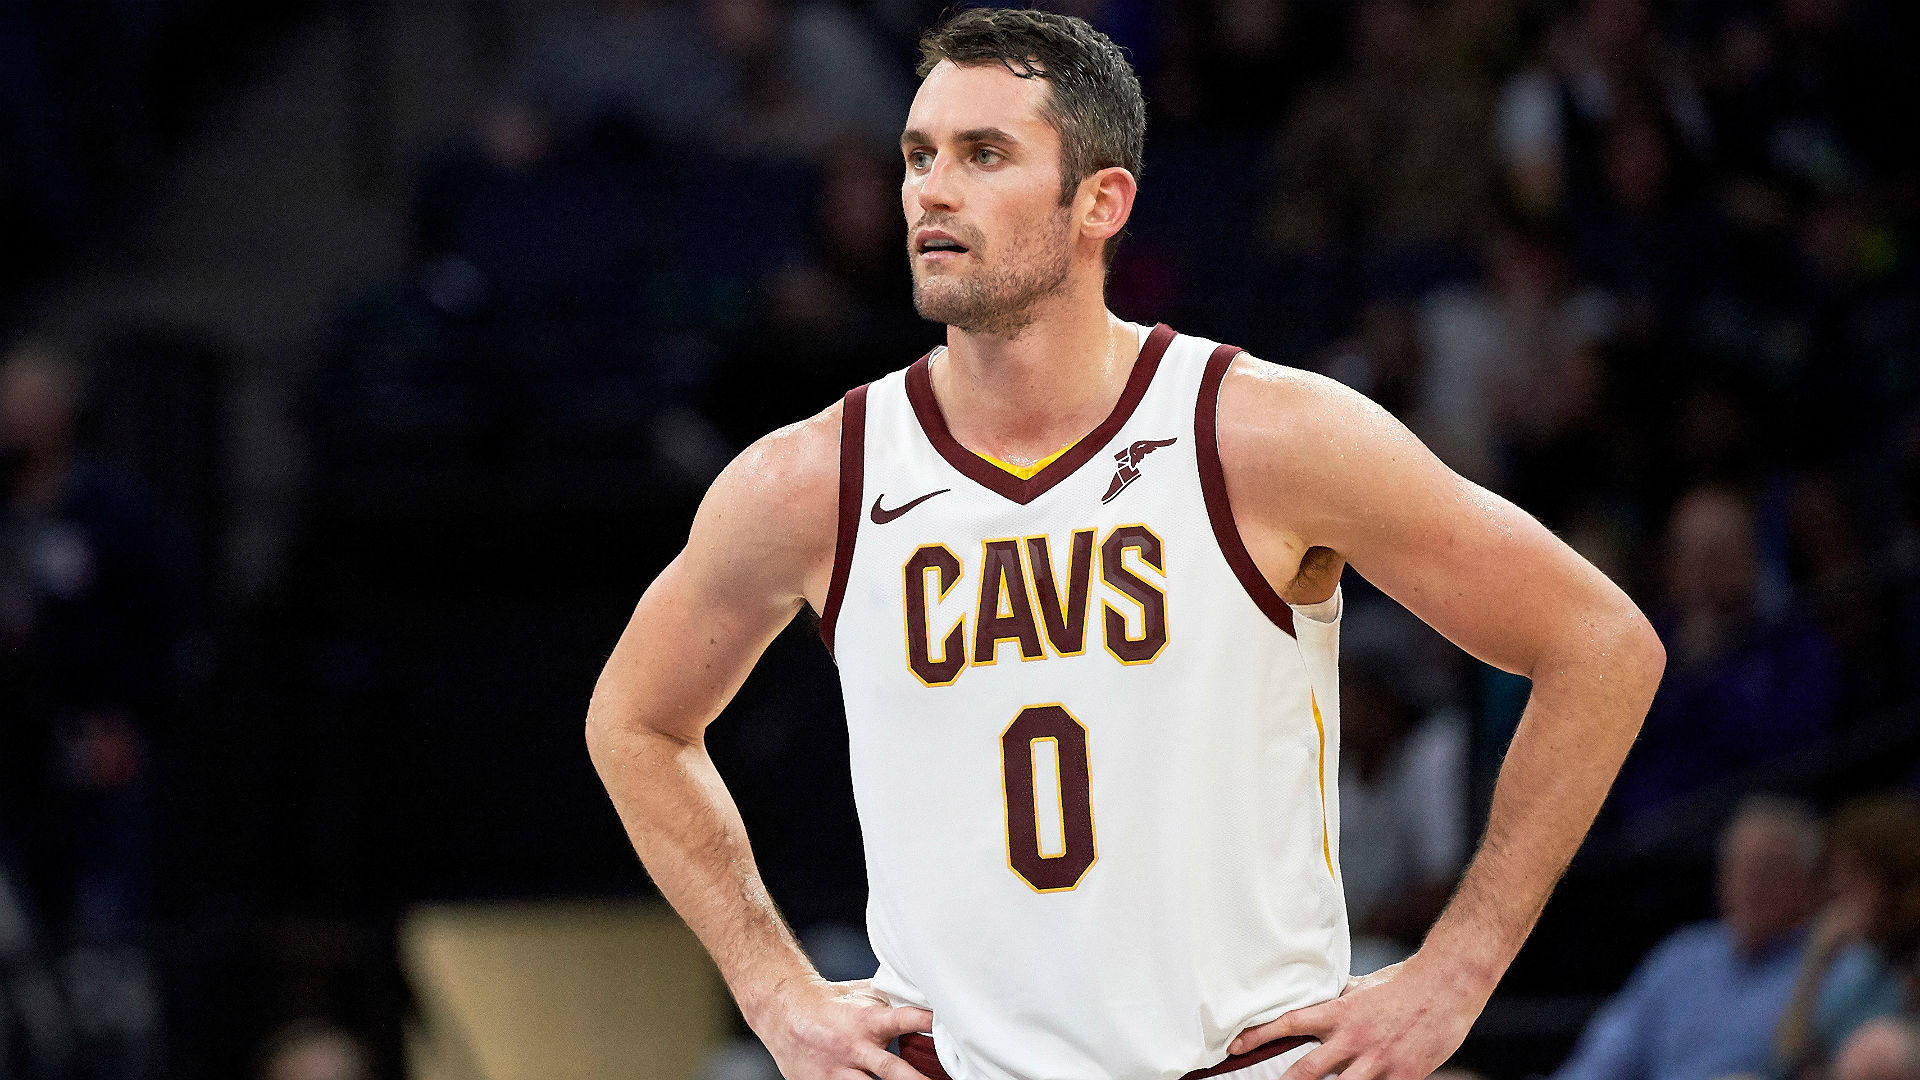 Kevin Love is latest NBA star to withdraw from Team USA